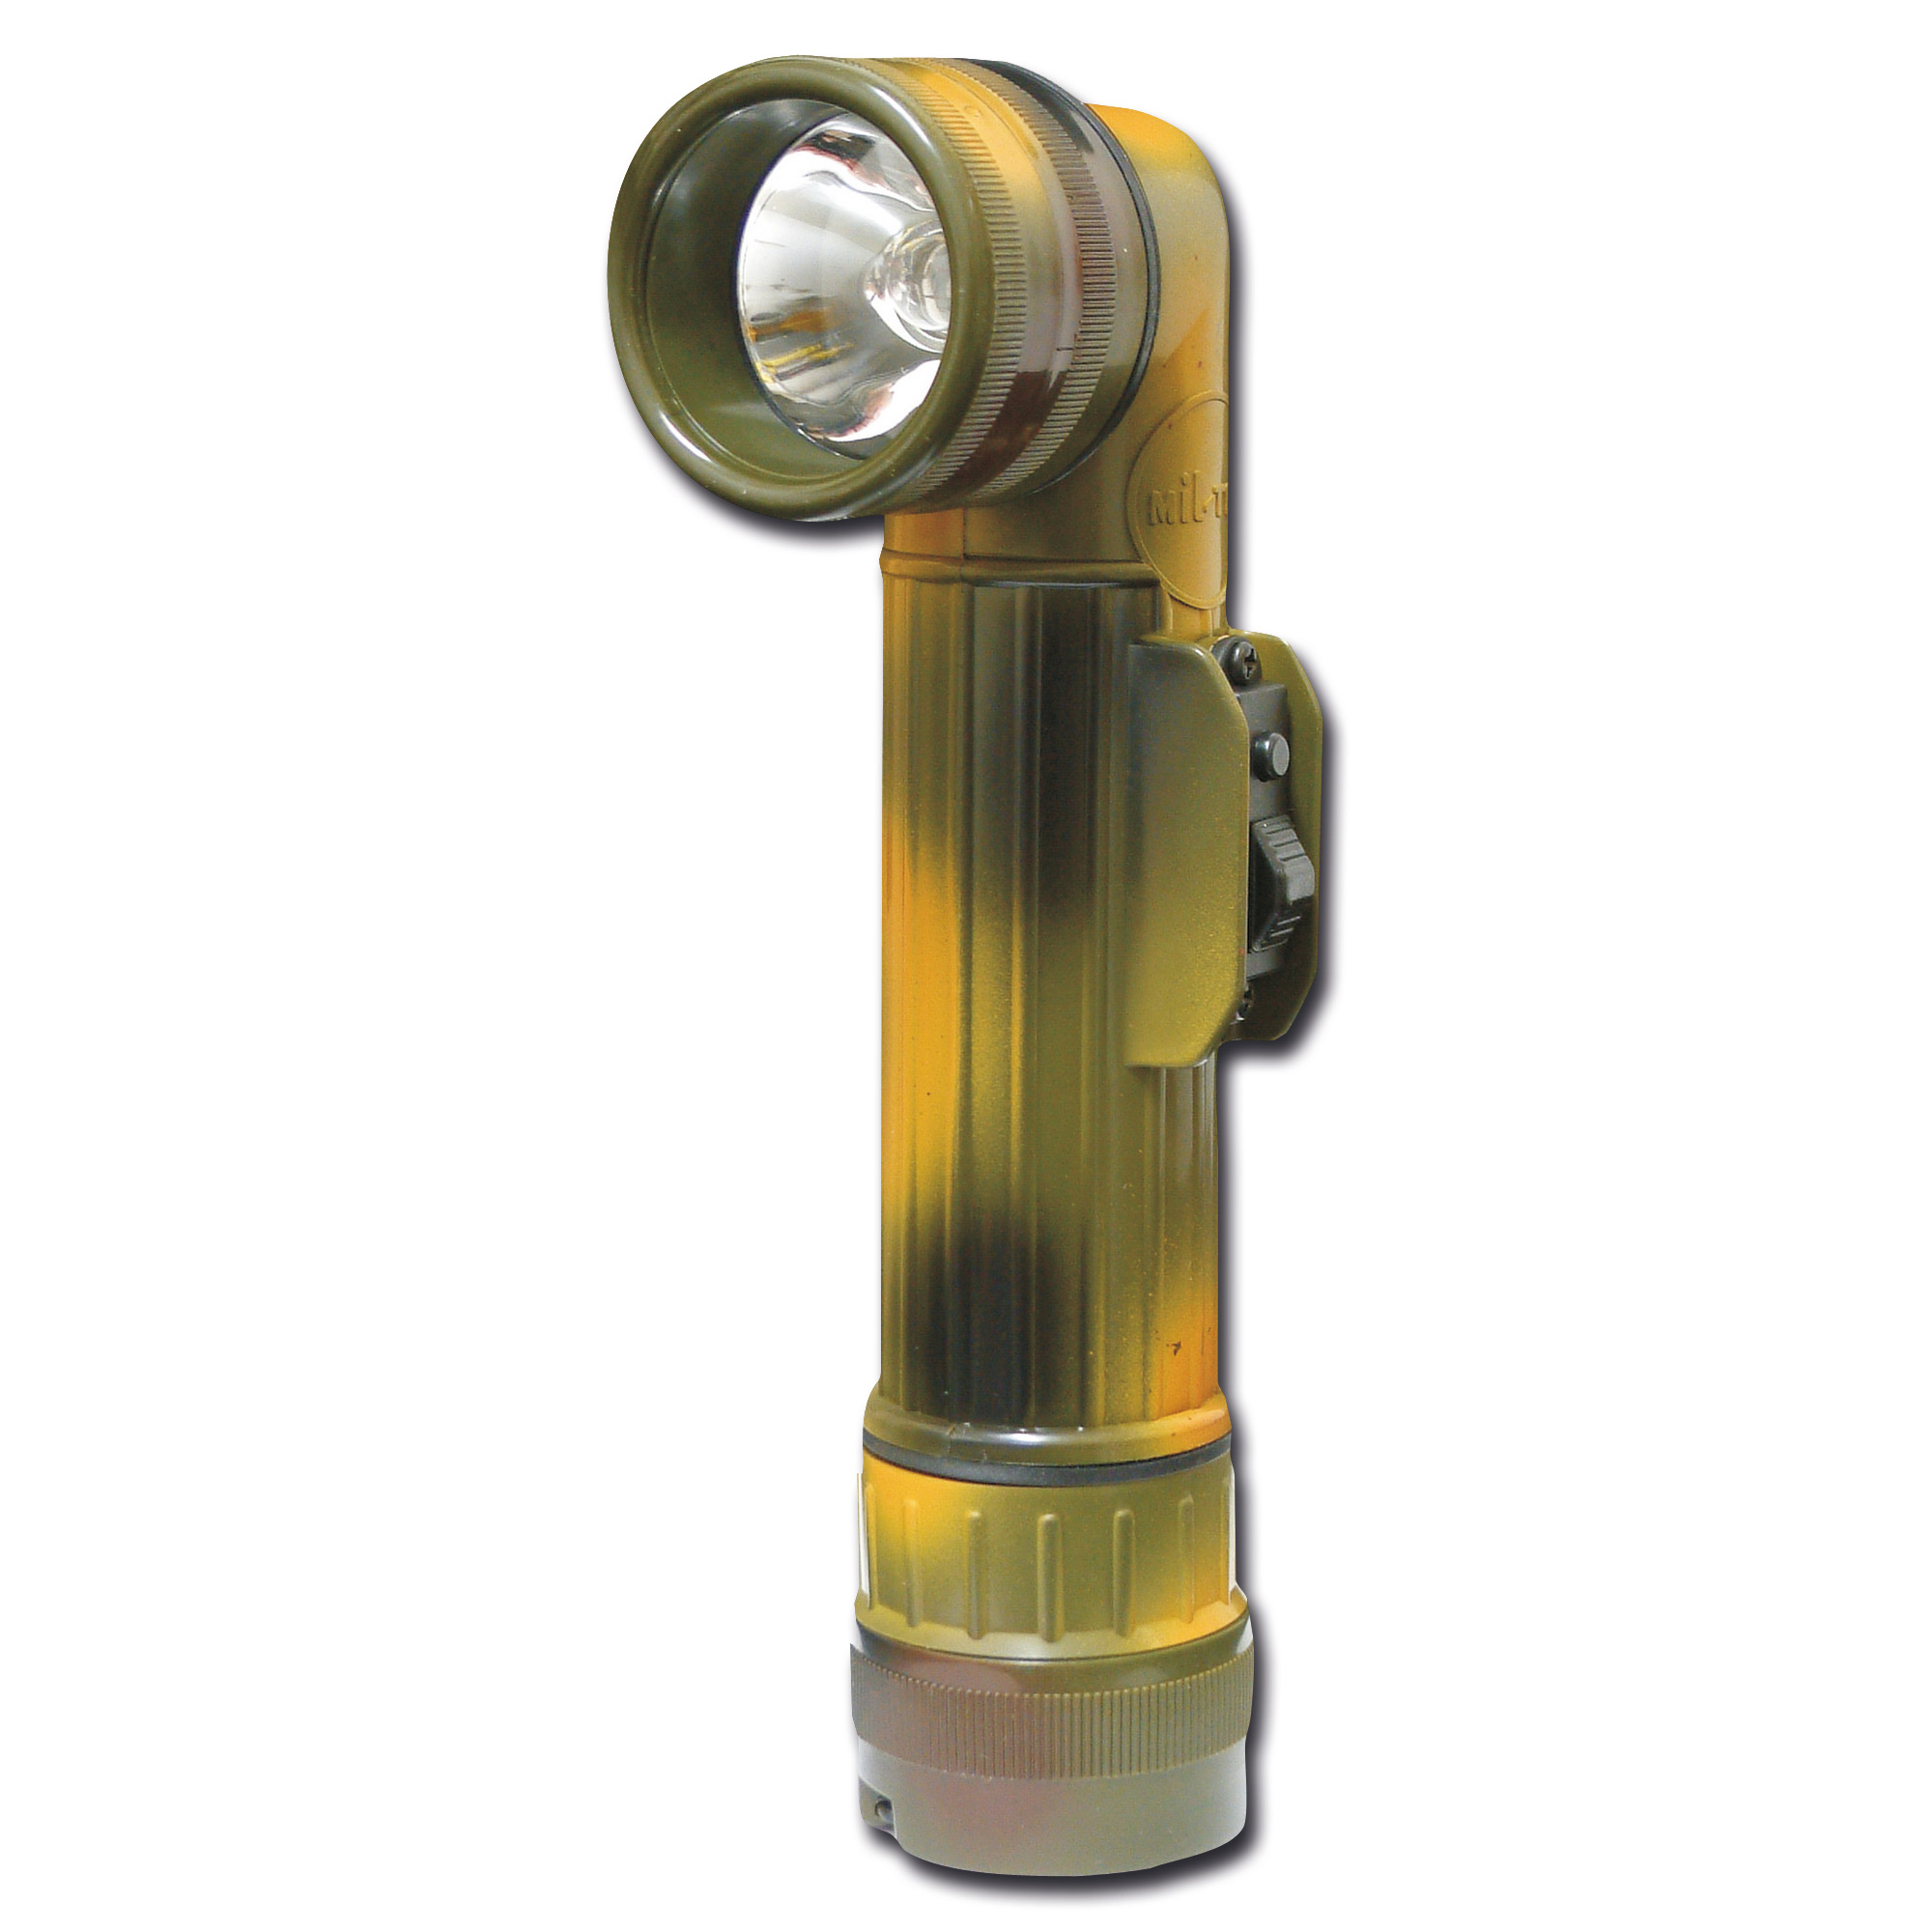 Angle head flashlight large camouflage